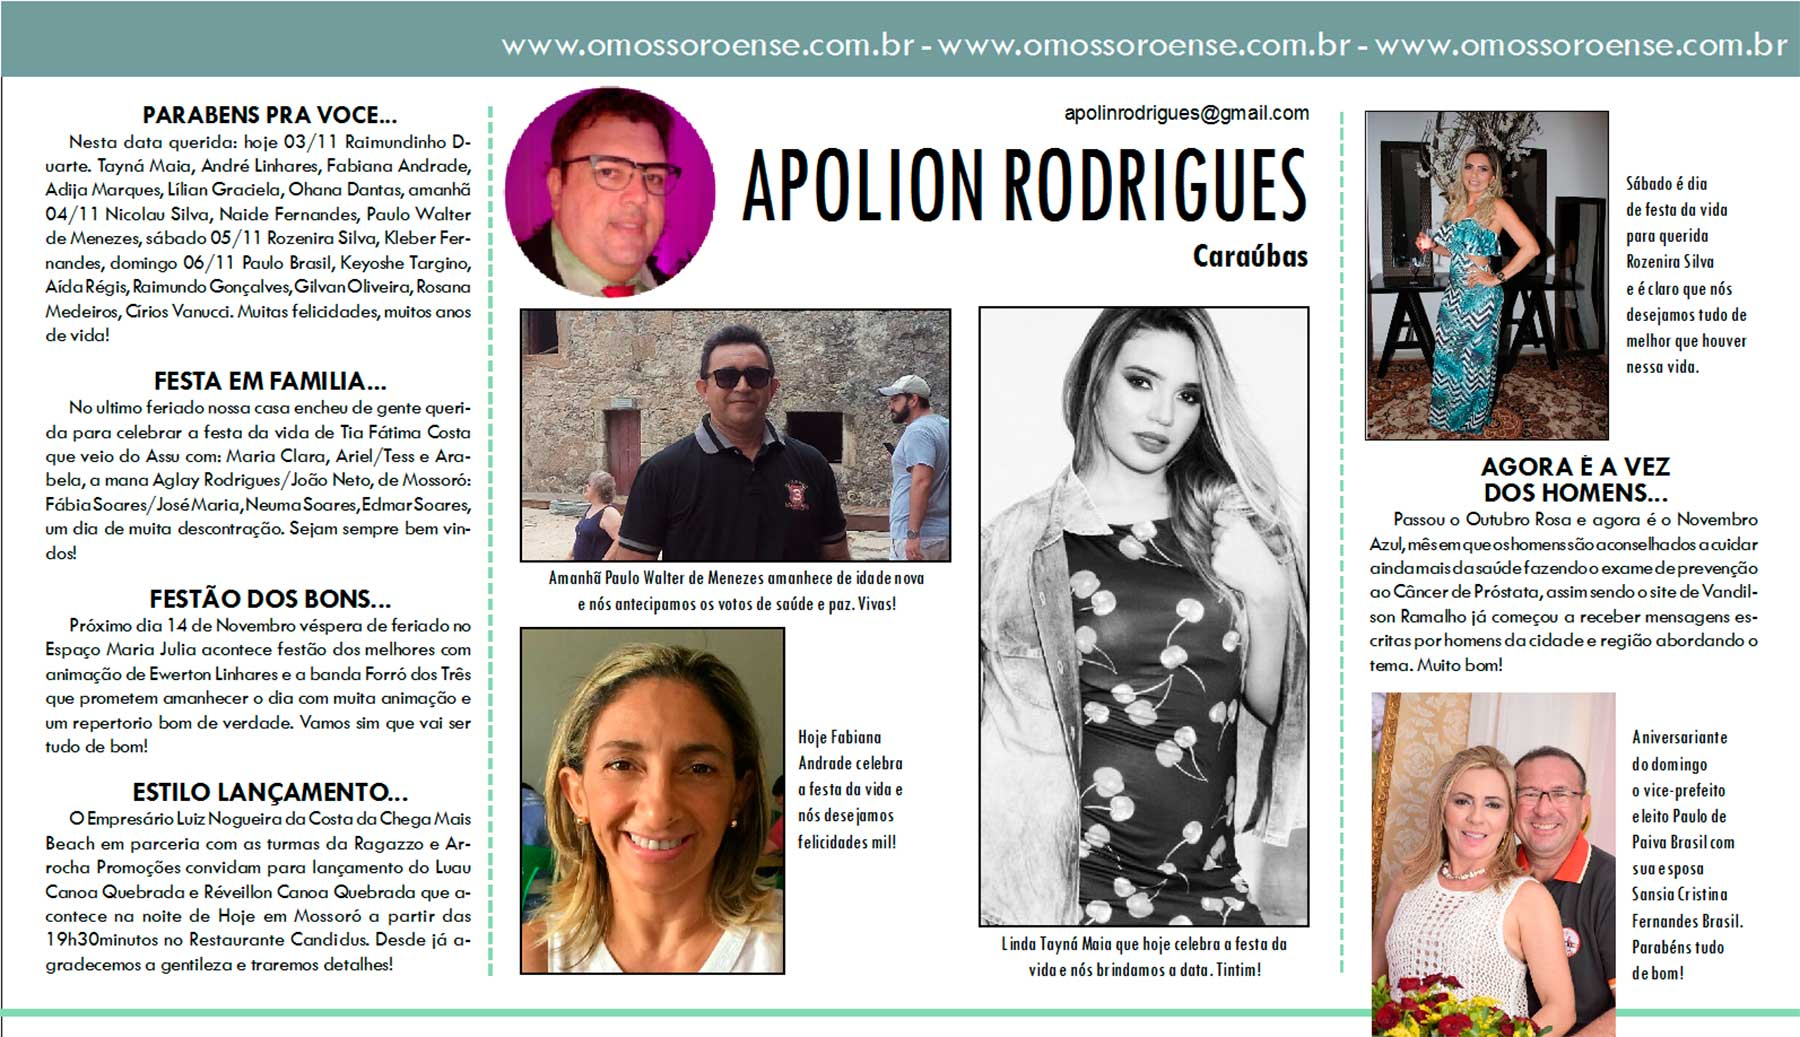 apolion-rodrigues-03-11-2016